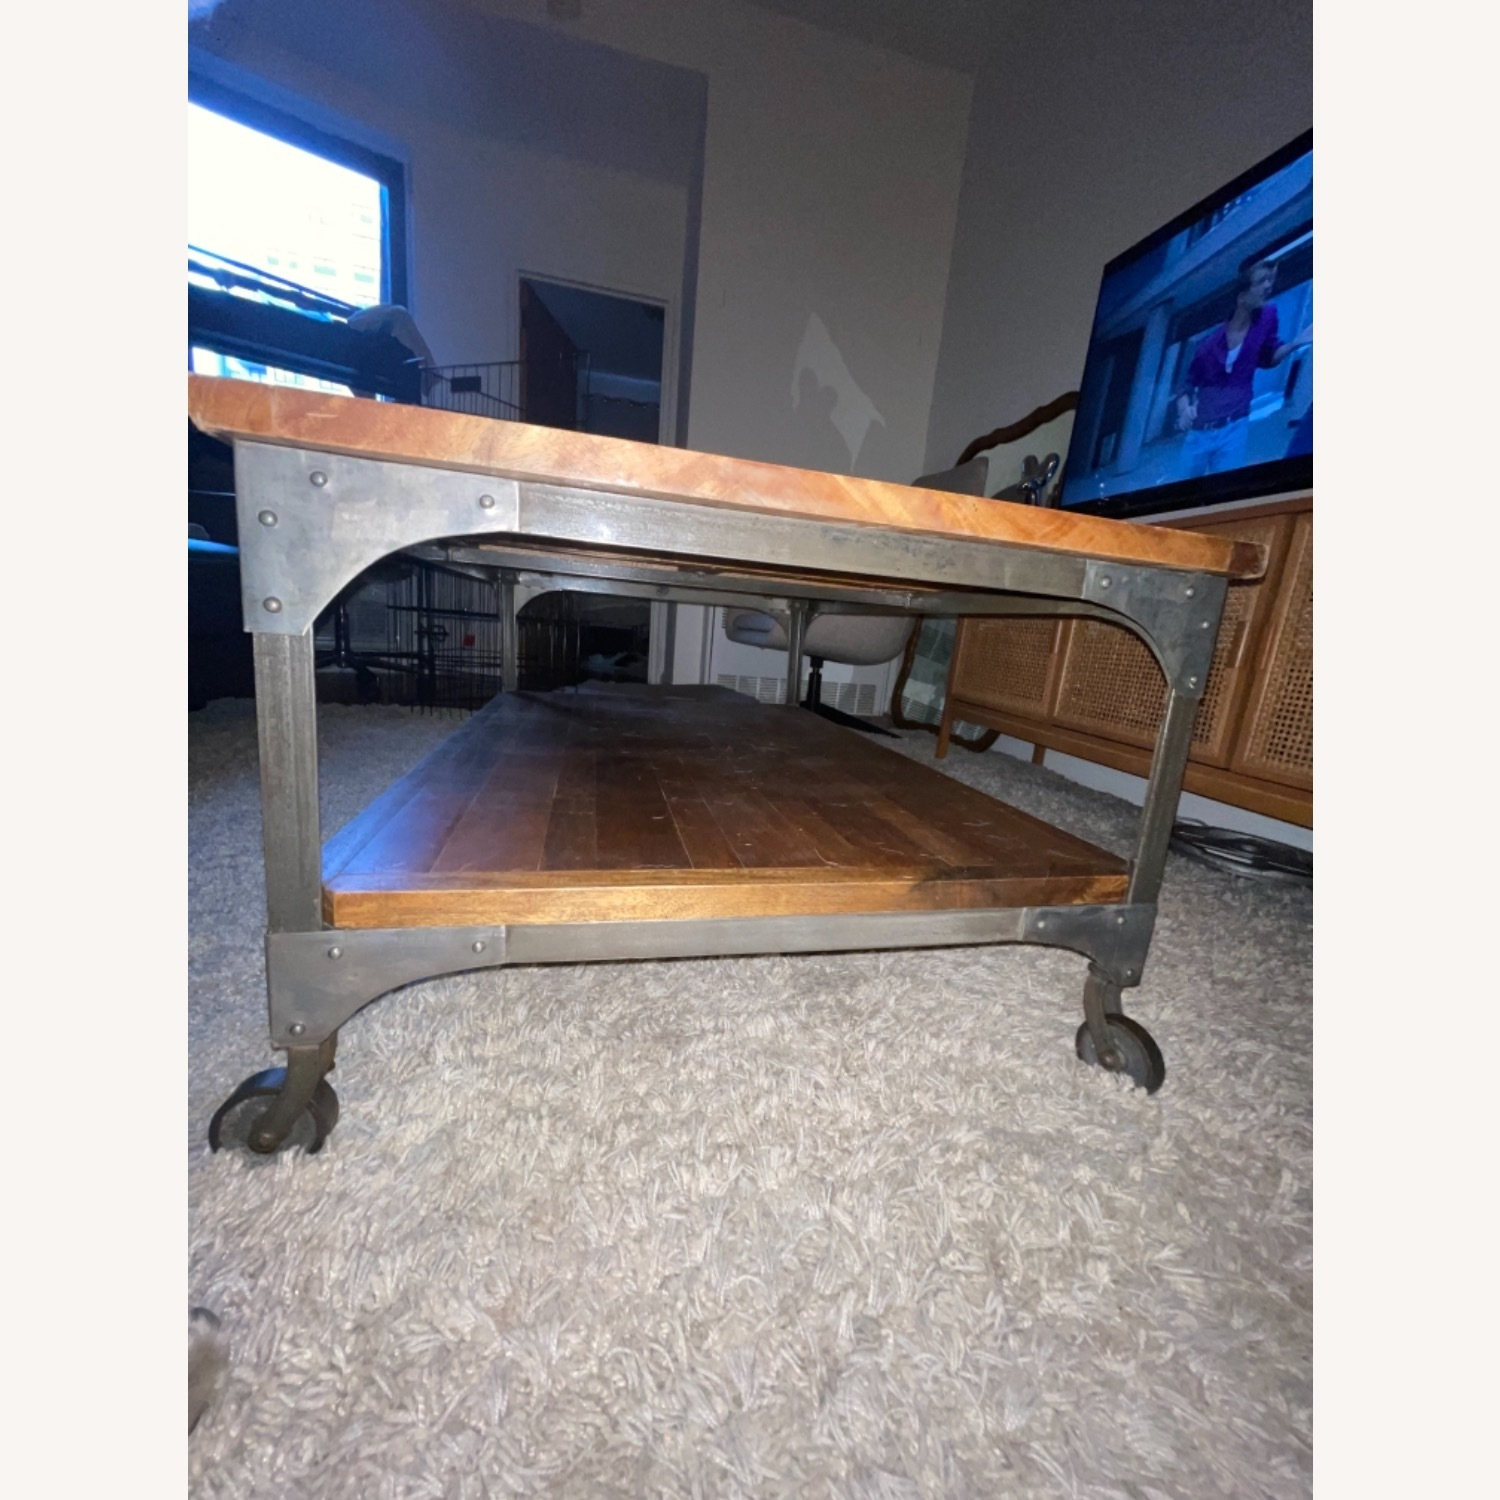 World Market Aiden Coffee Table - Industrial look - image-3